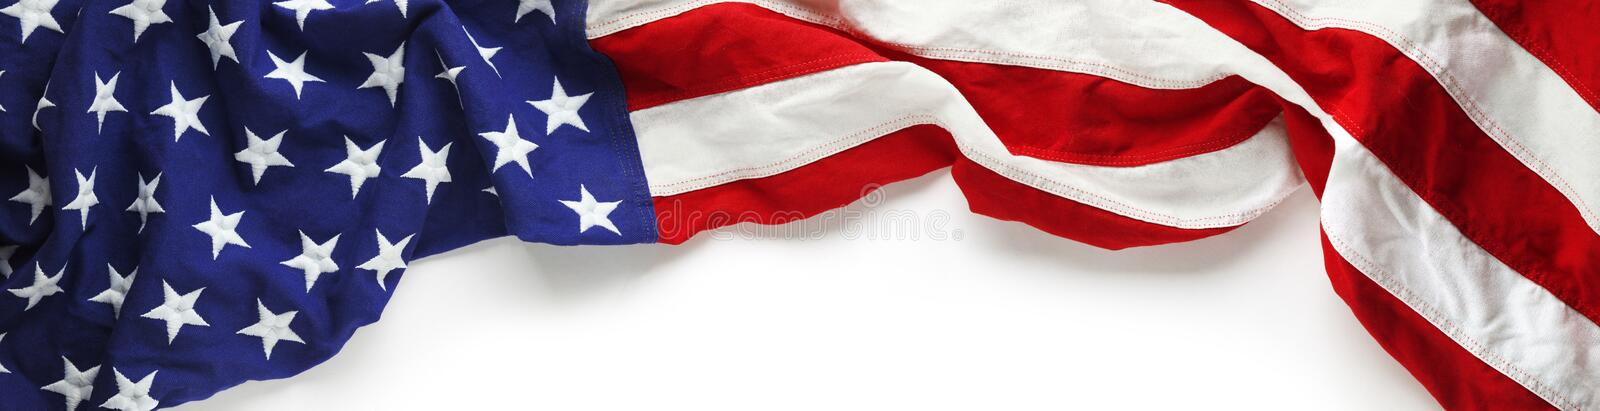 American flag for Memorial day or Veteran`s day background royalty free stock images